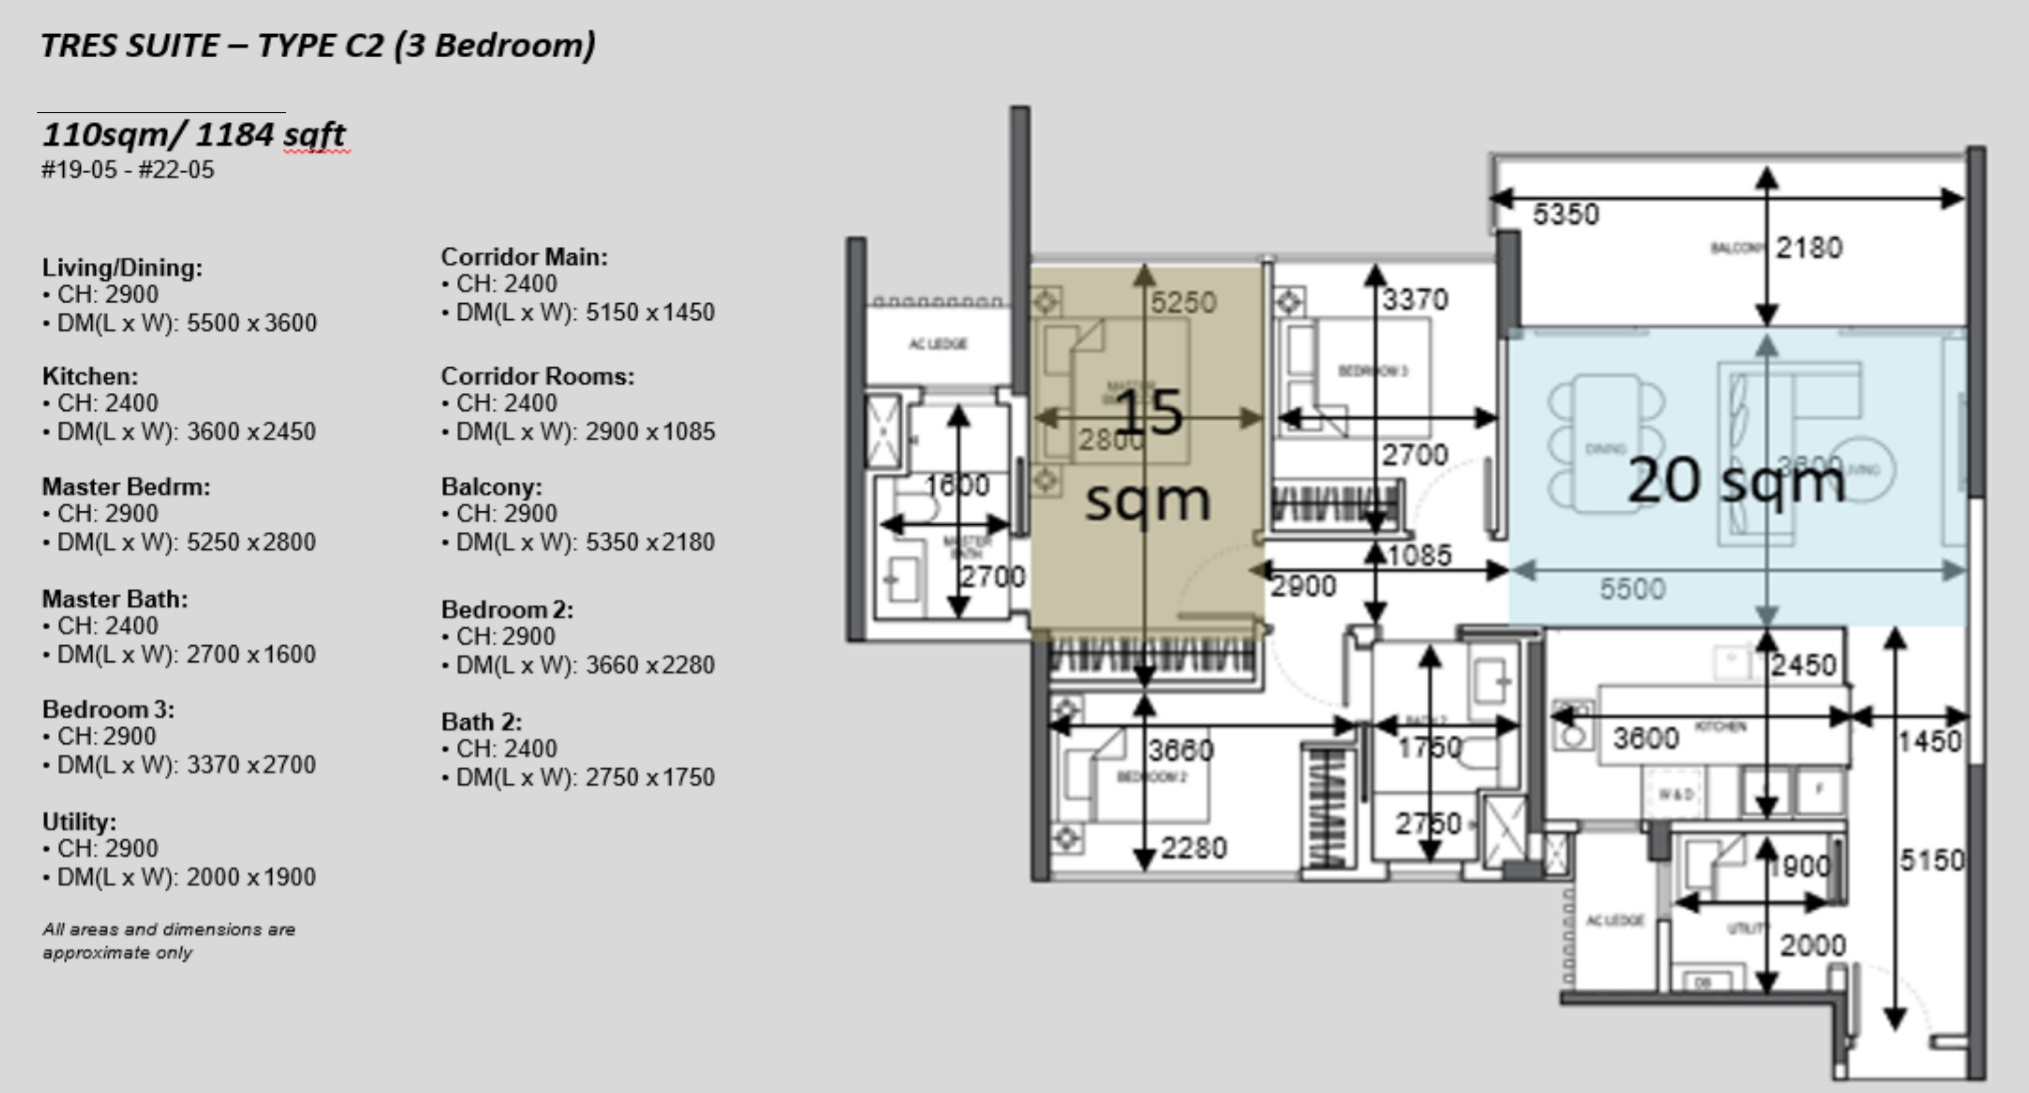 The Atelier condo floorplan 3 bedroom Type C2